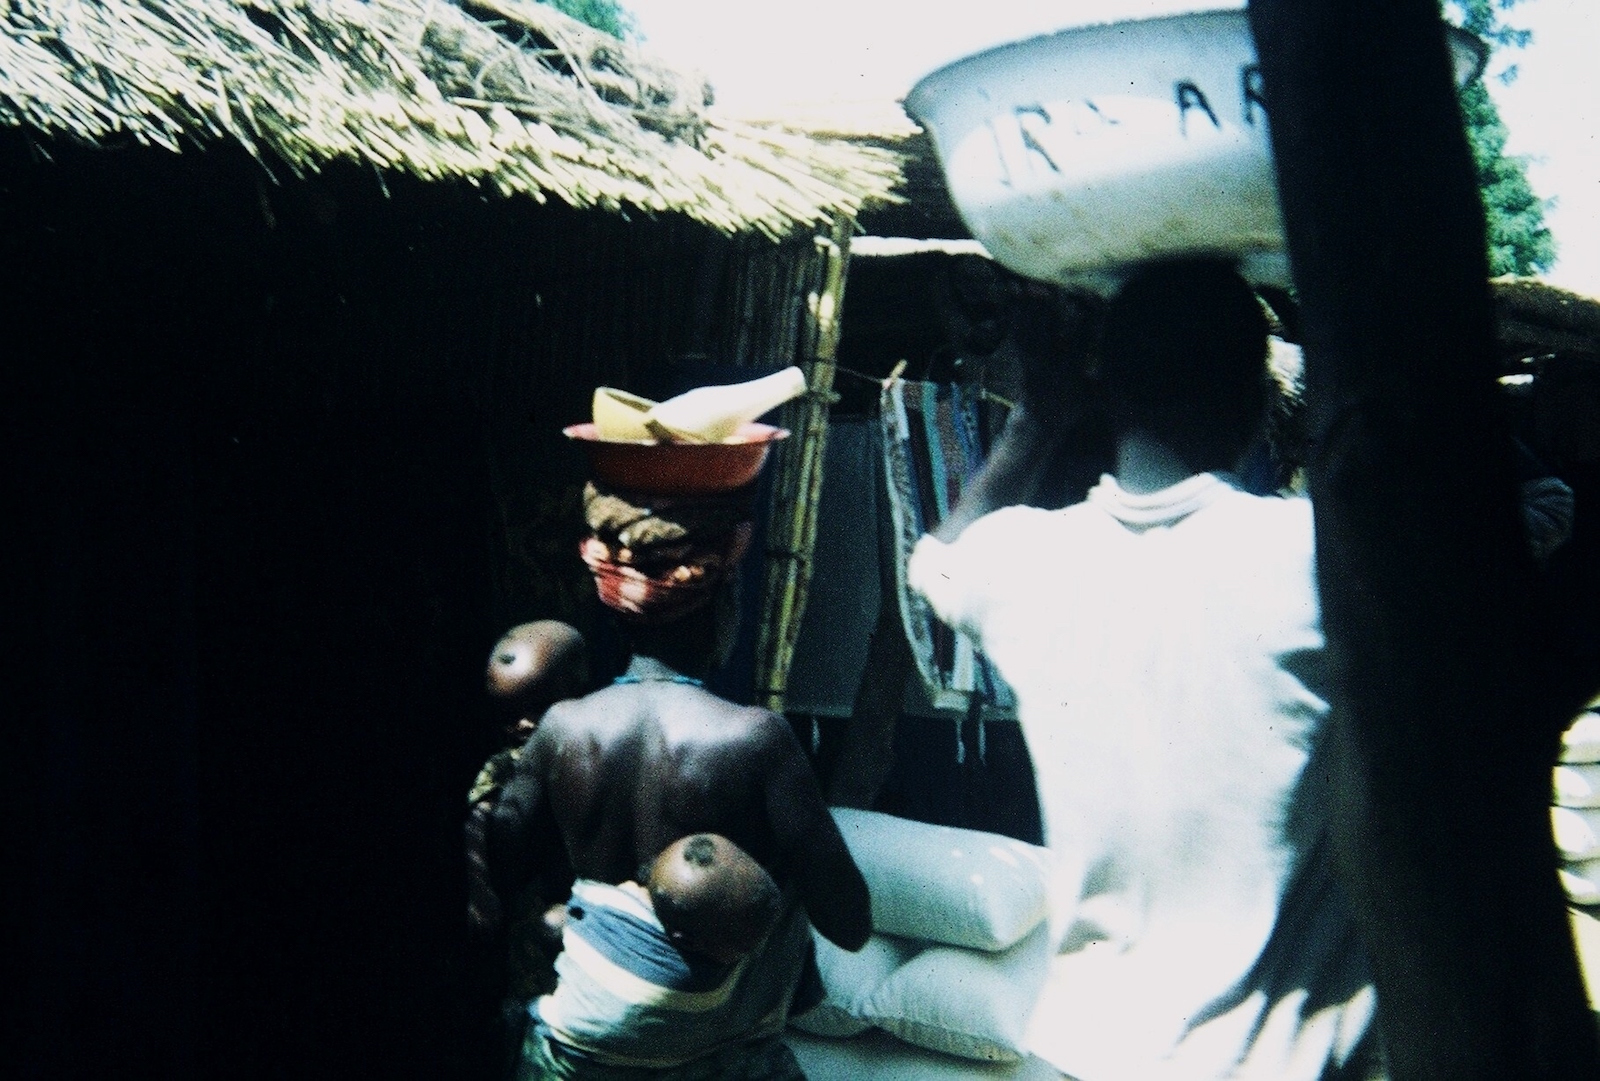 In African market. Back of African man in white shirt walking ahead, head-bearing large white pan; back of African woman with bare shiny ebony skin, young child in her arms, an infant strapped on her back, and head-bearing a small bowl and bottle in a larger bowl.